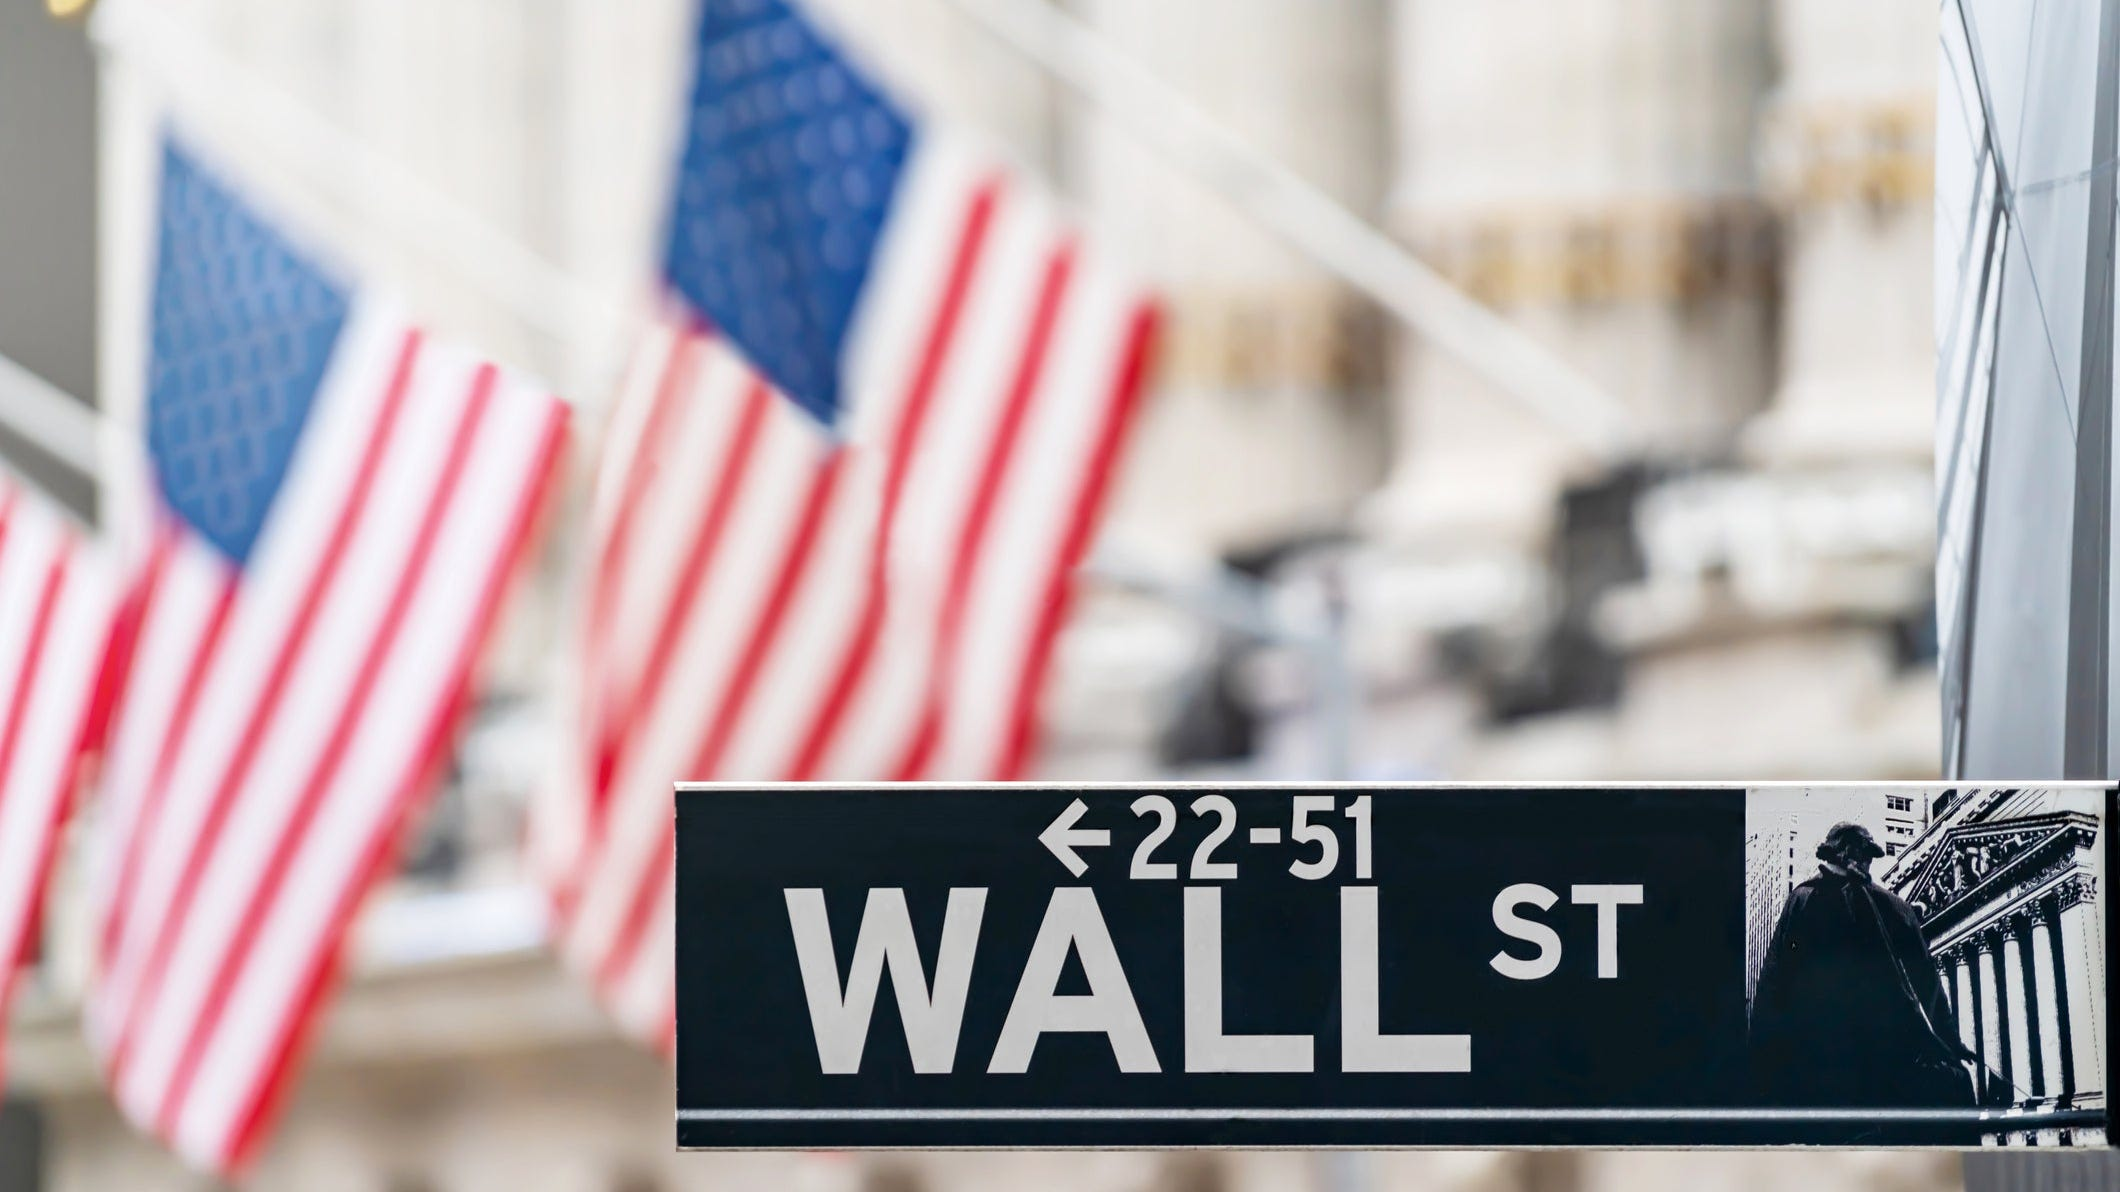 Stocks manage modest gains overall